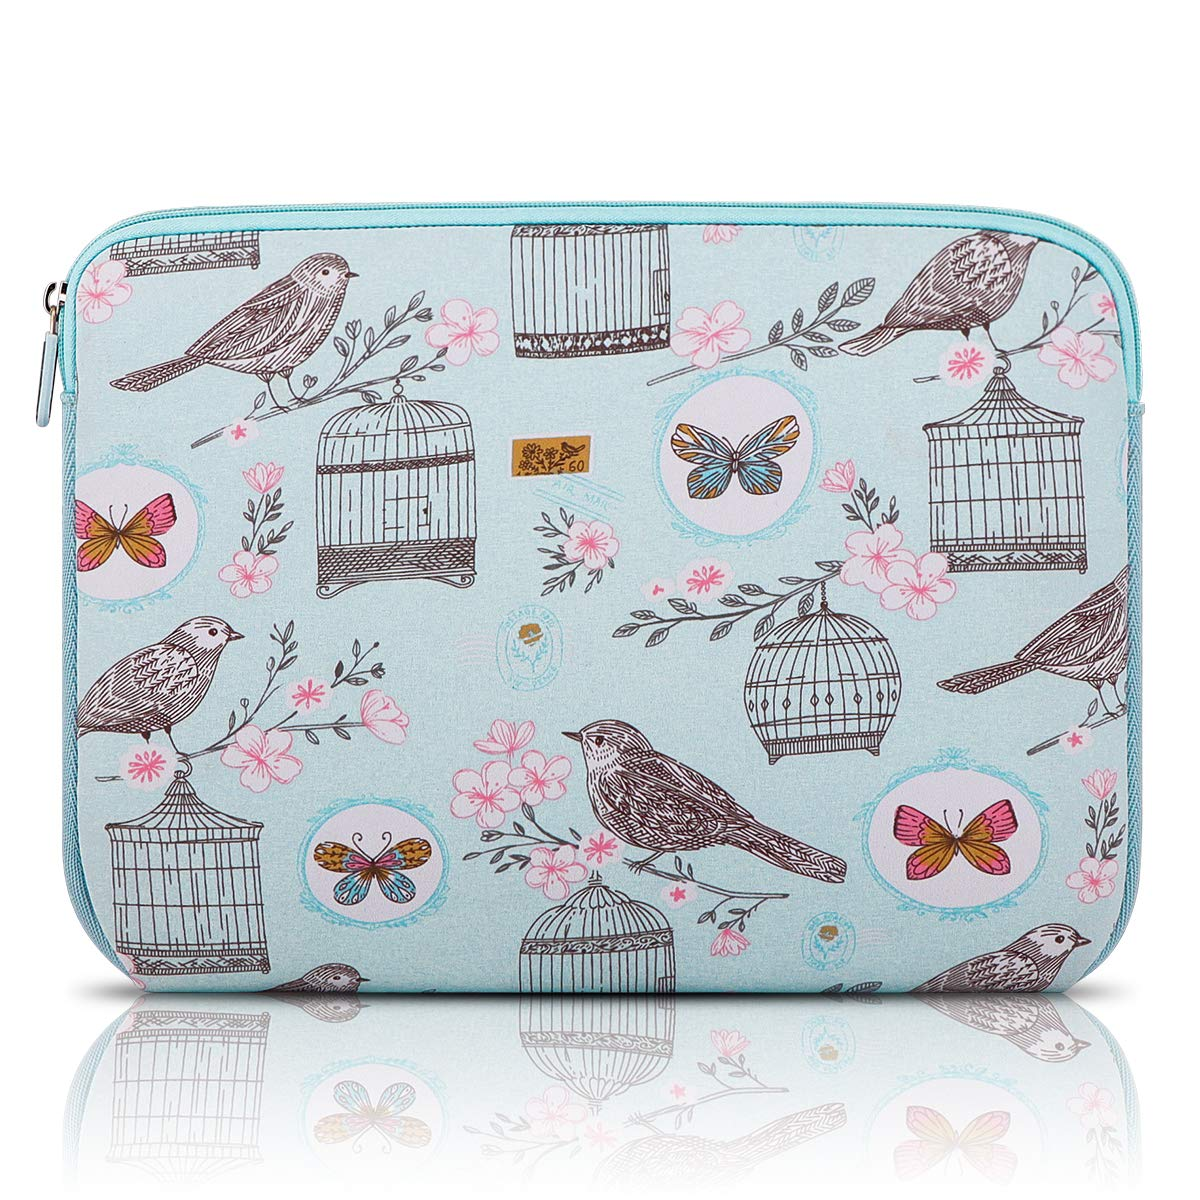 Arvok 13-14 Inch Laptop Sleeve Multi-Color & Size Choices Case/Water-Resistant Neoprene Notebook Computer Pocket Tablet Carrying Bag Cover, Blue Bird